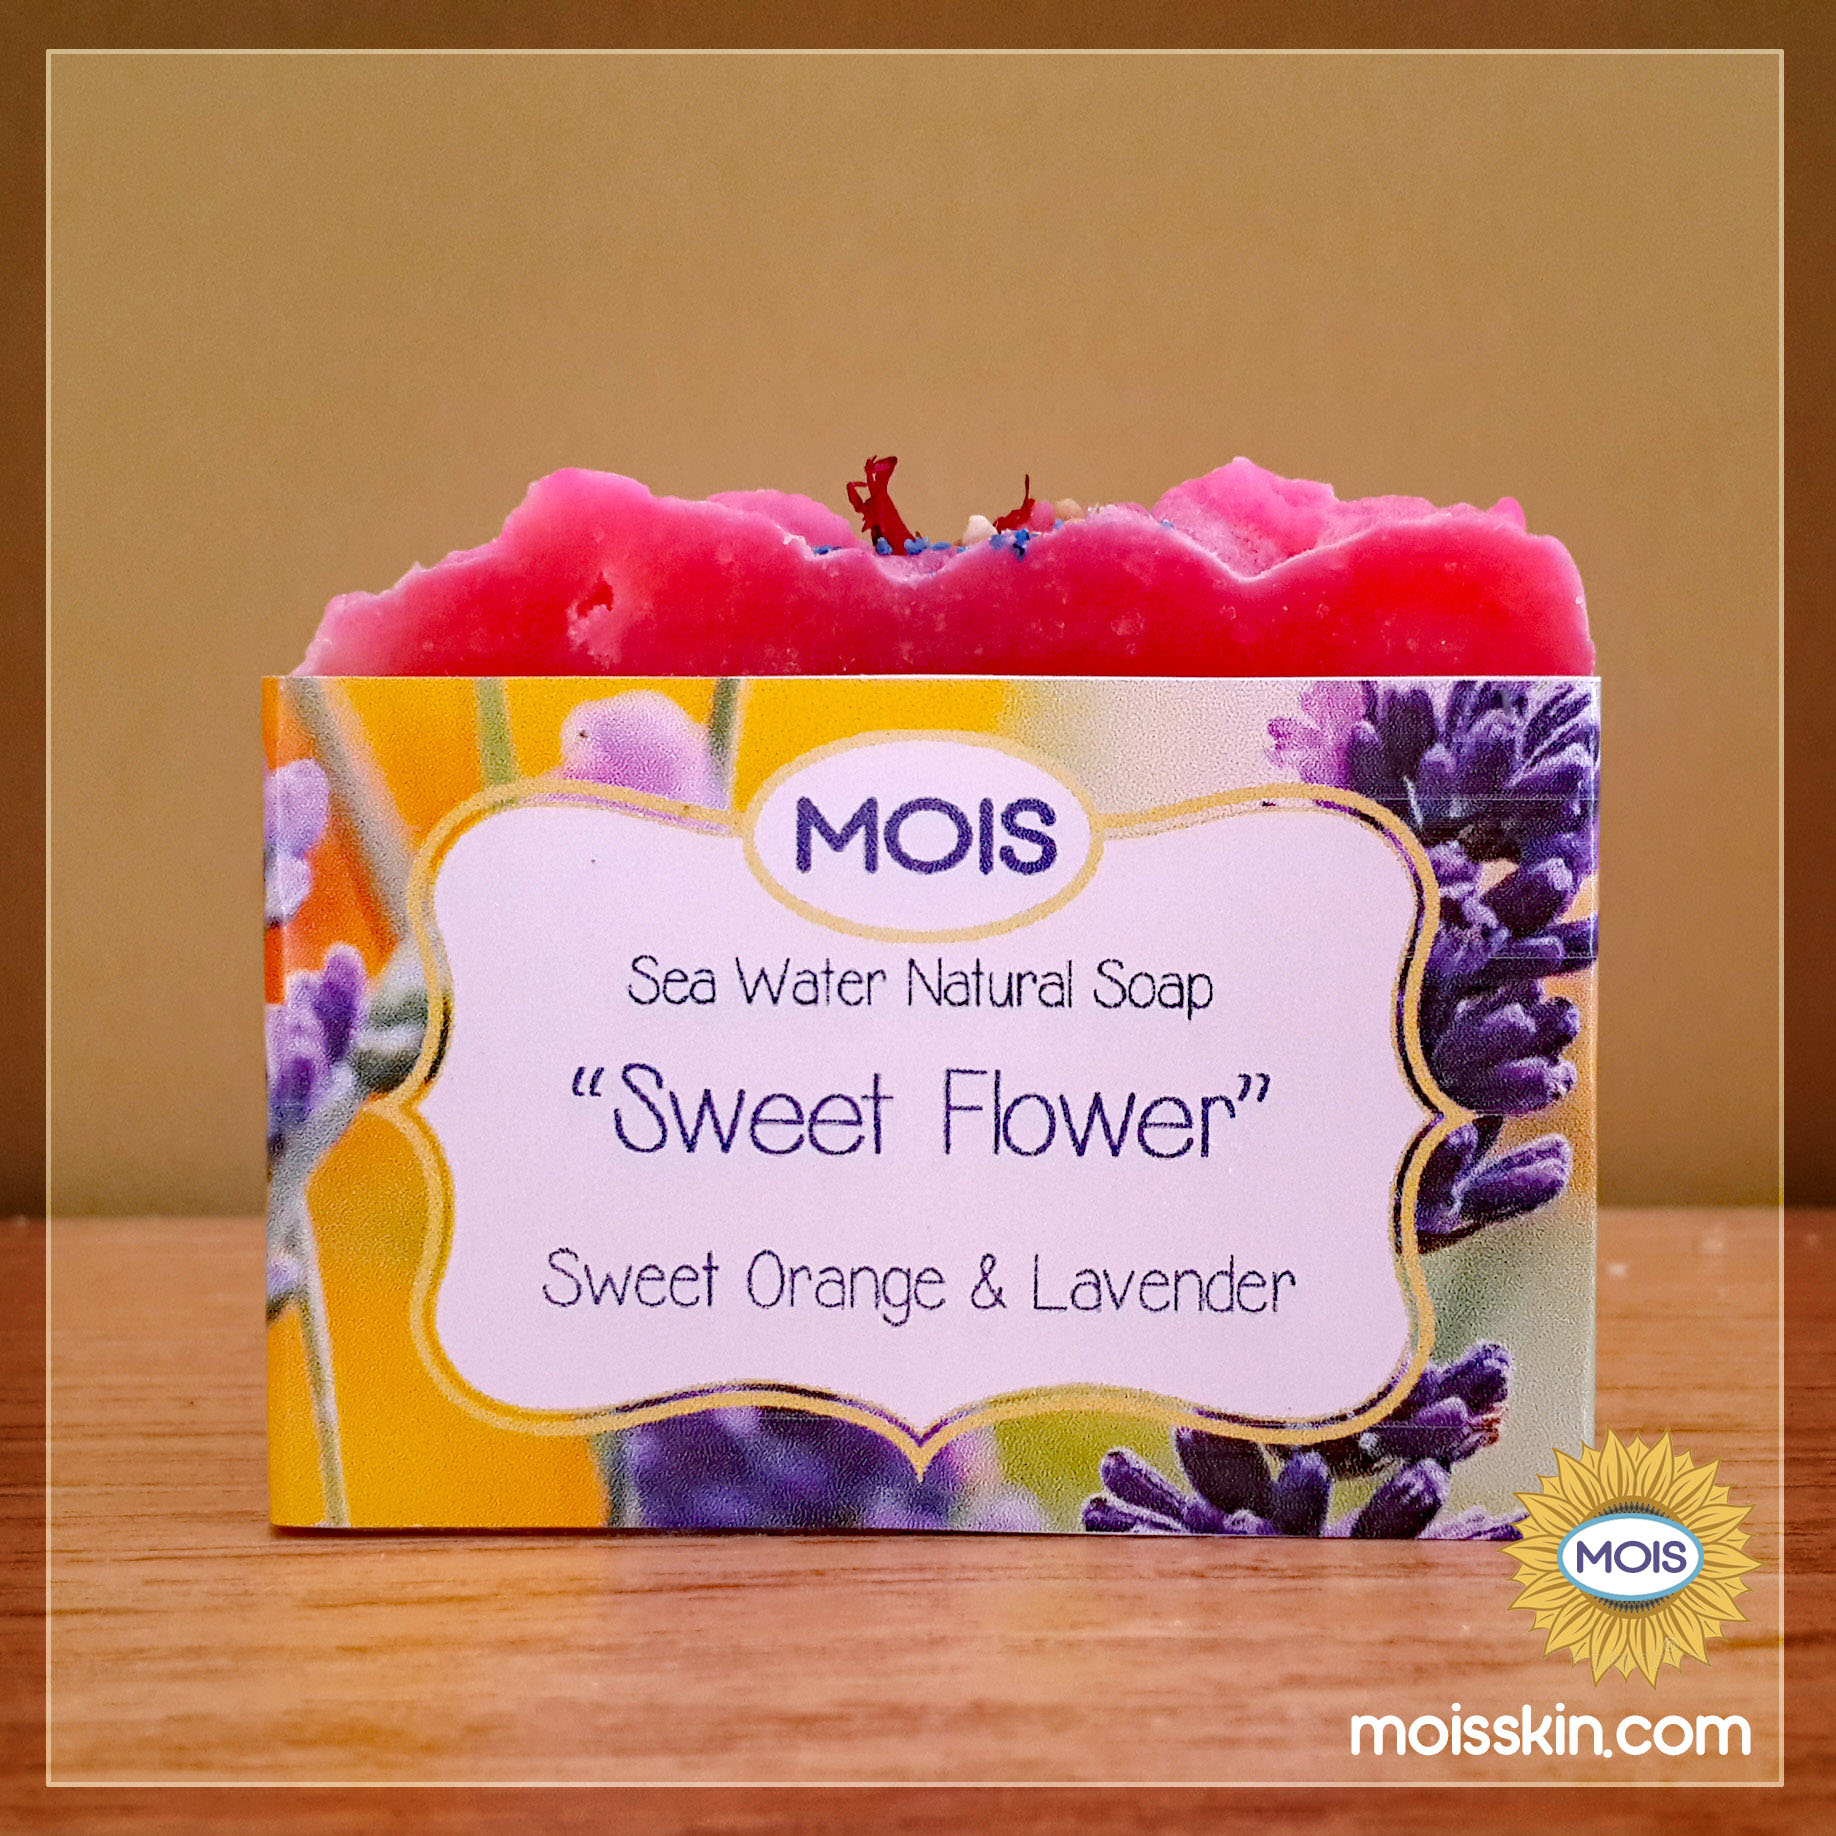 Unique fruity and flowery fragrant that makes your day beautiful.